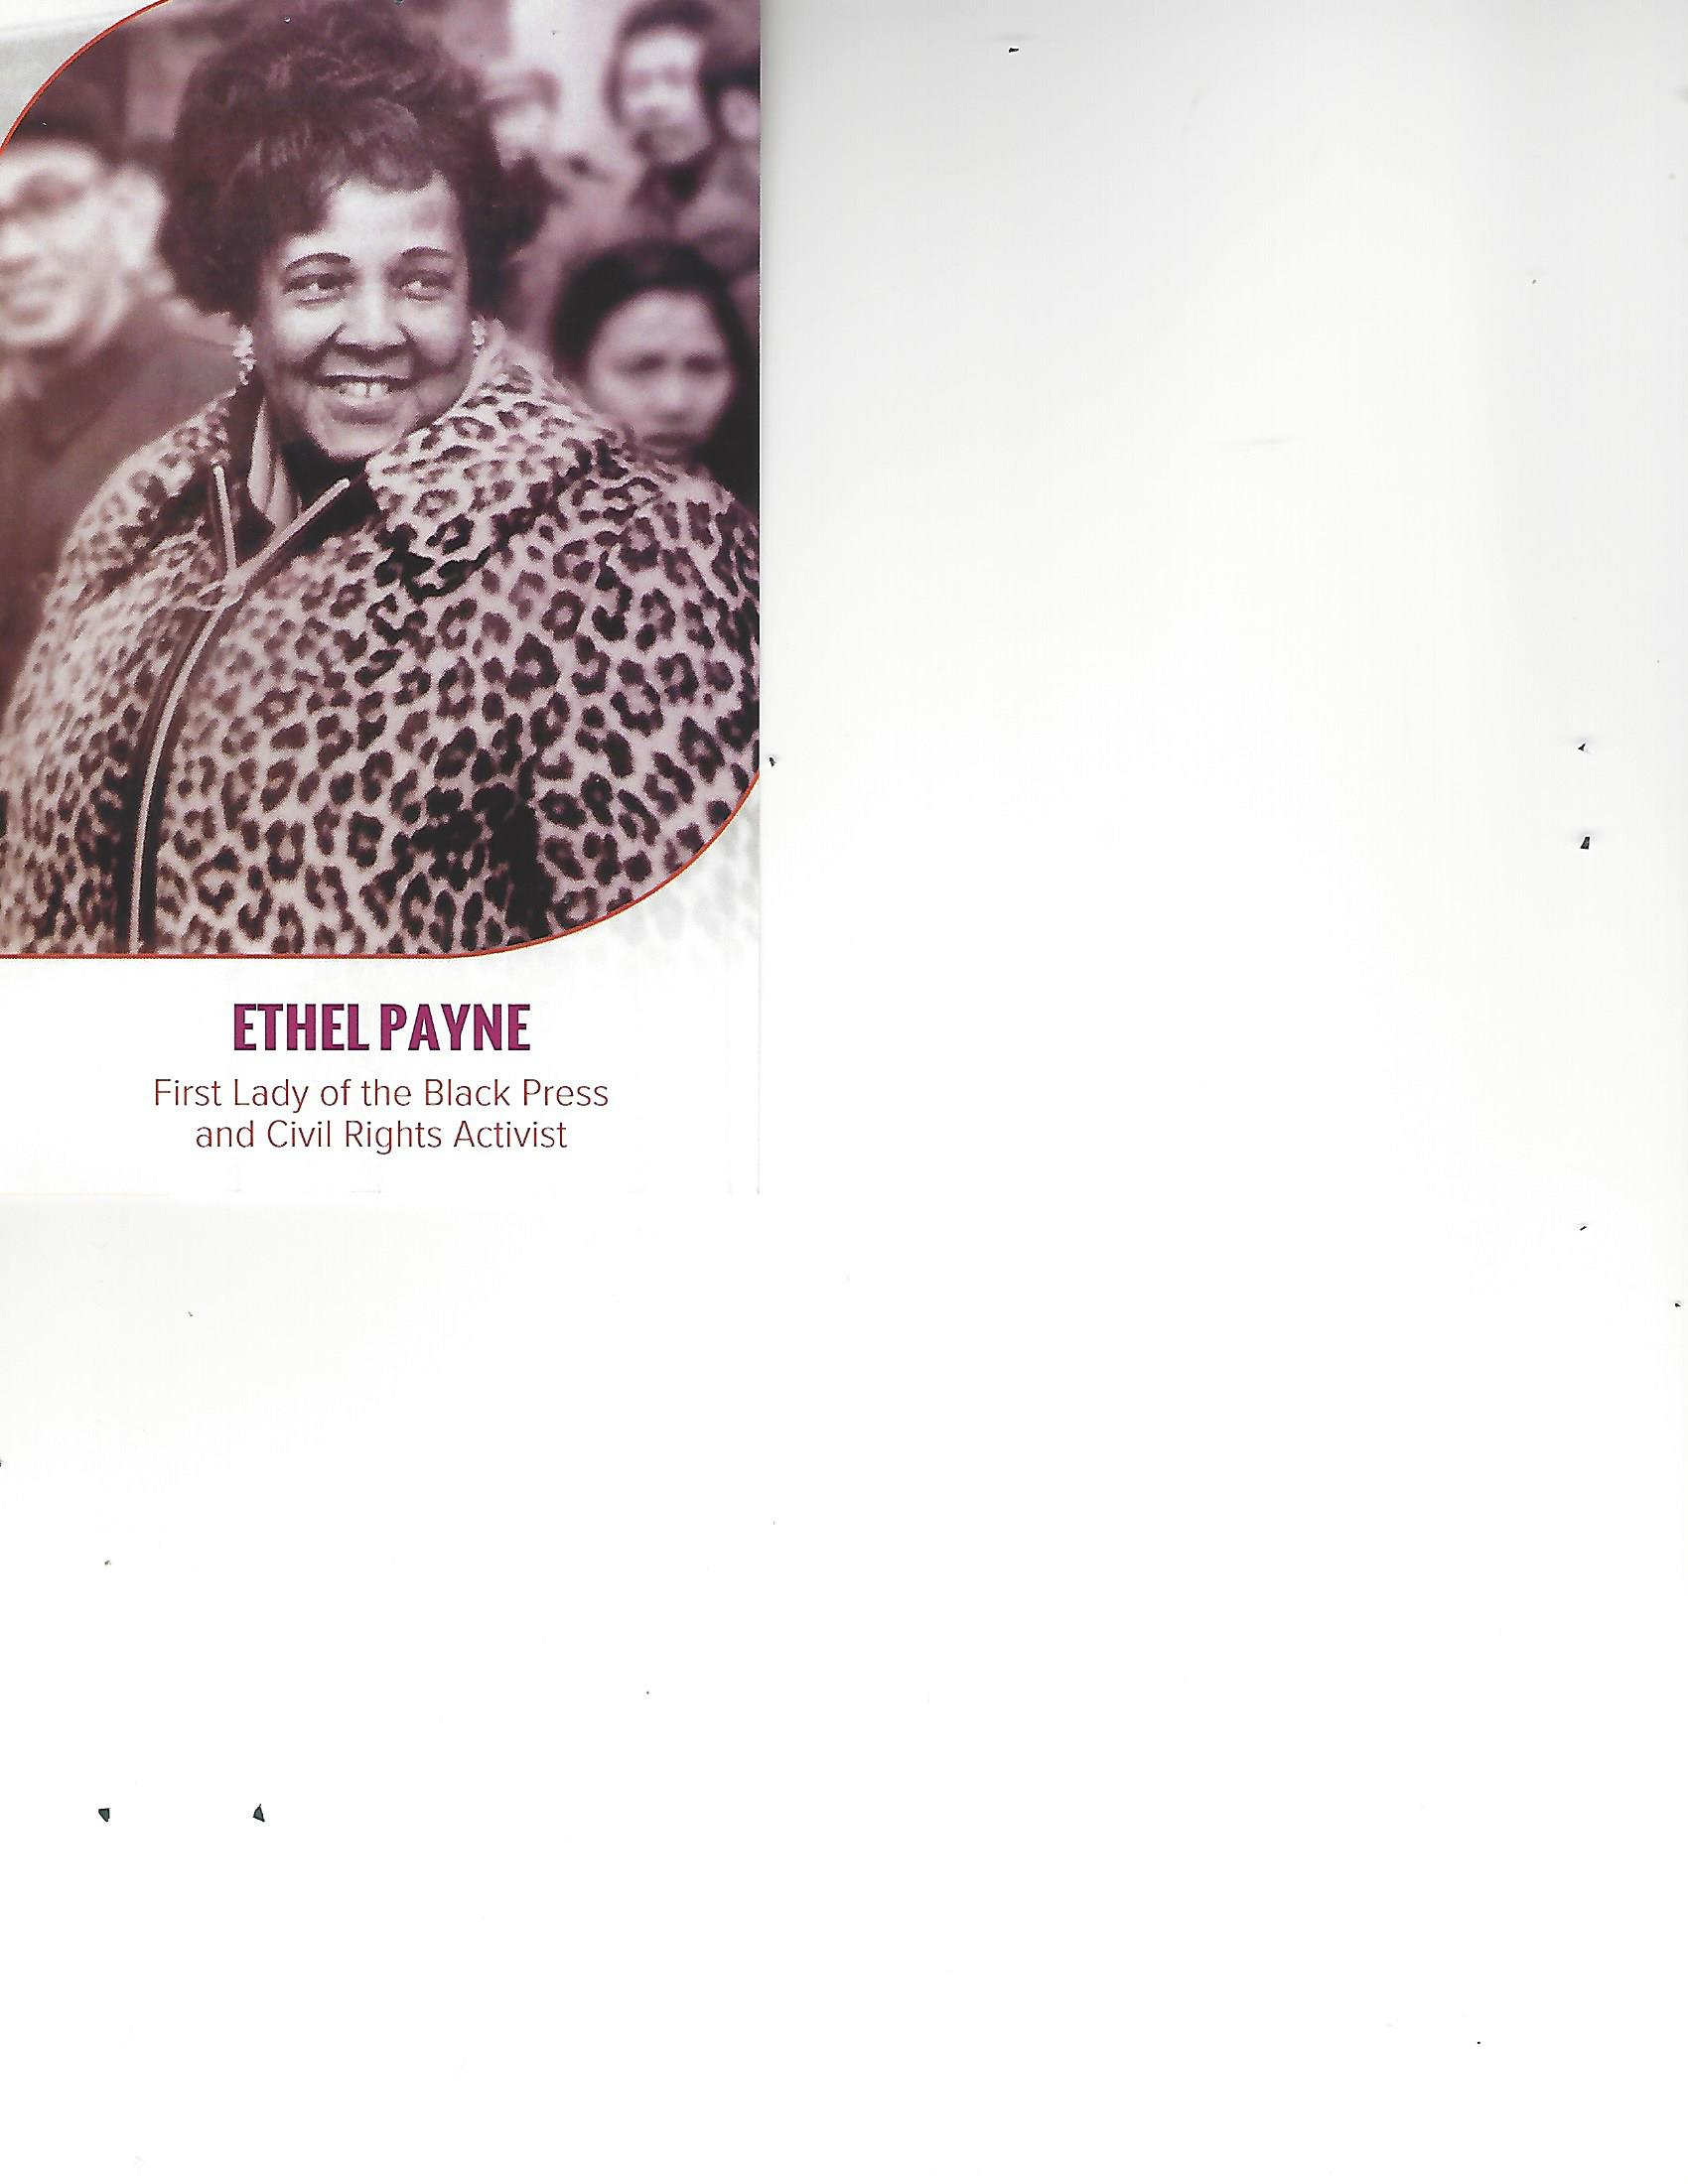 To read Ethel Payne's complete biography, visit:www.womenshistory.org/education-resources/biographies/ethel payne